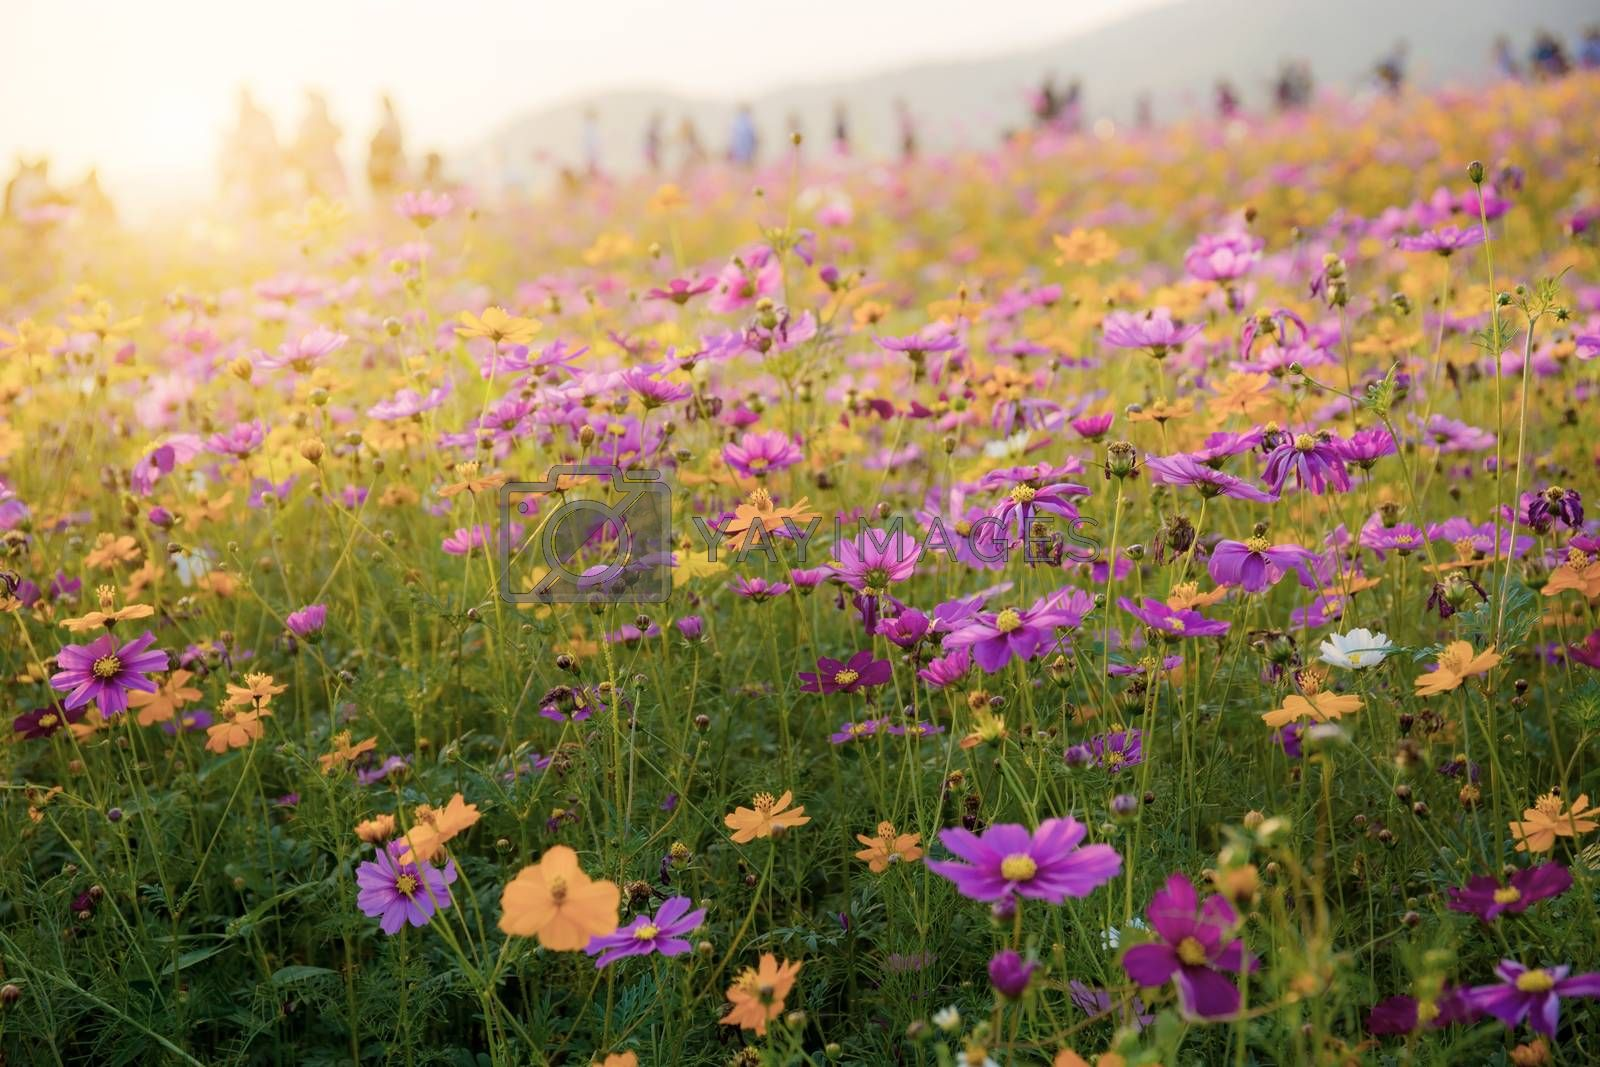 Cosmos on field with colorful at the sunlight.